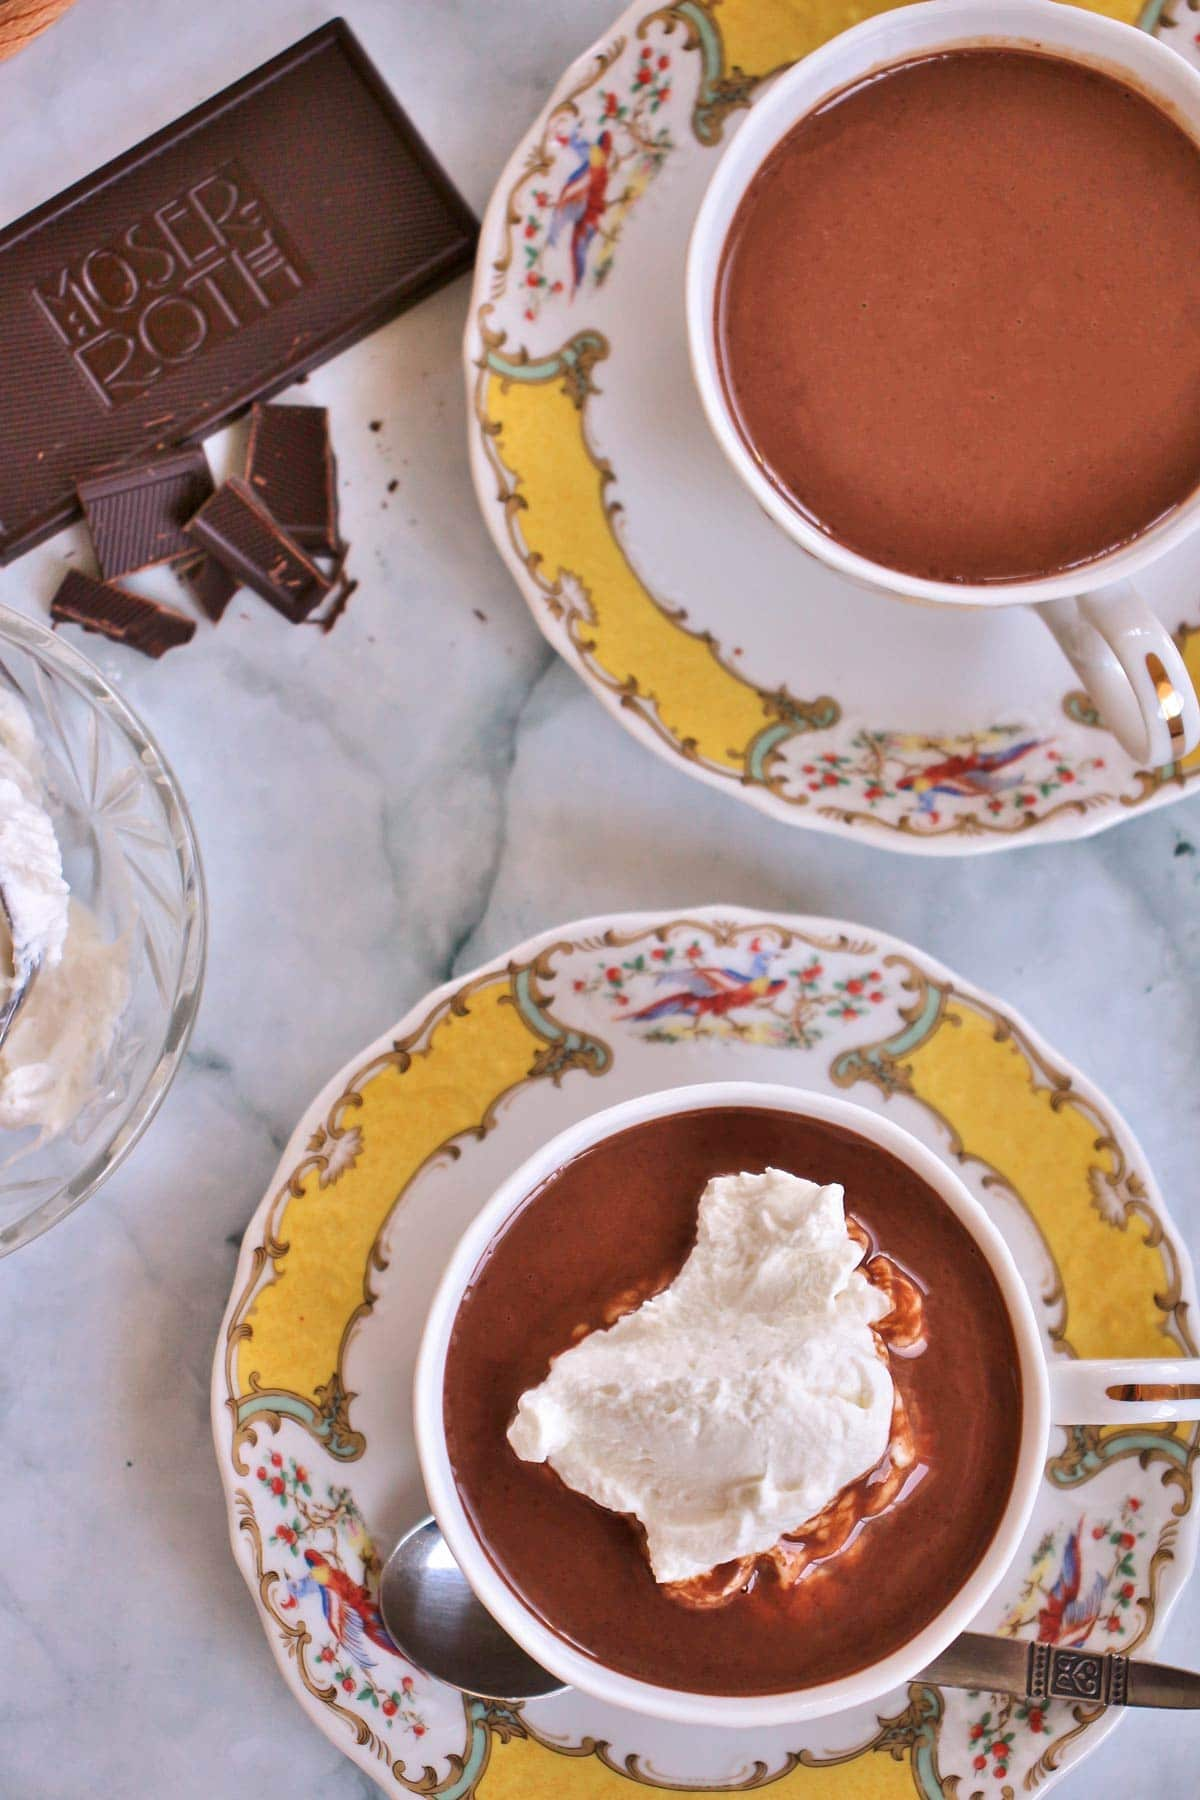 Two tea cups filled with hot chocolate, one topped with whipped cream.